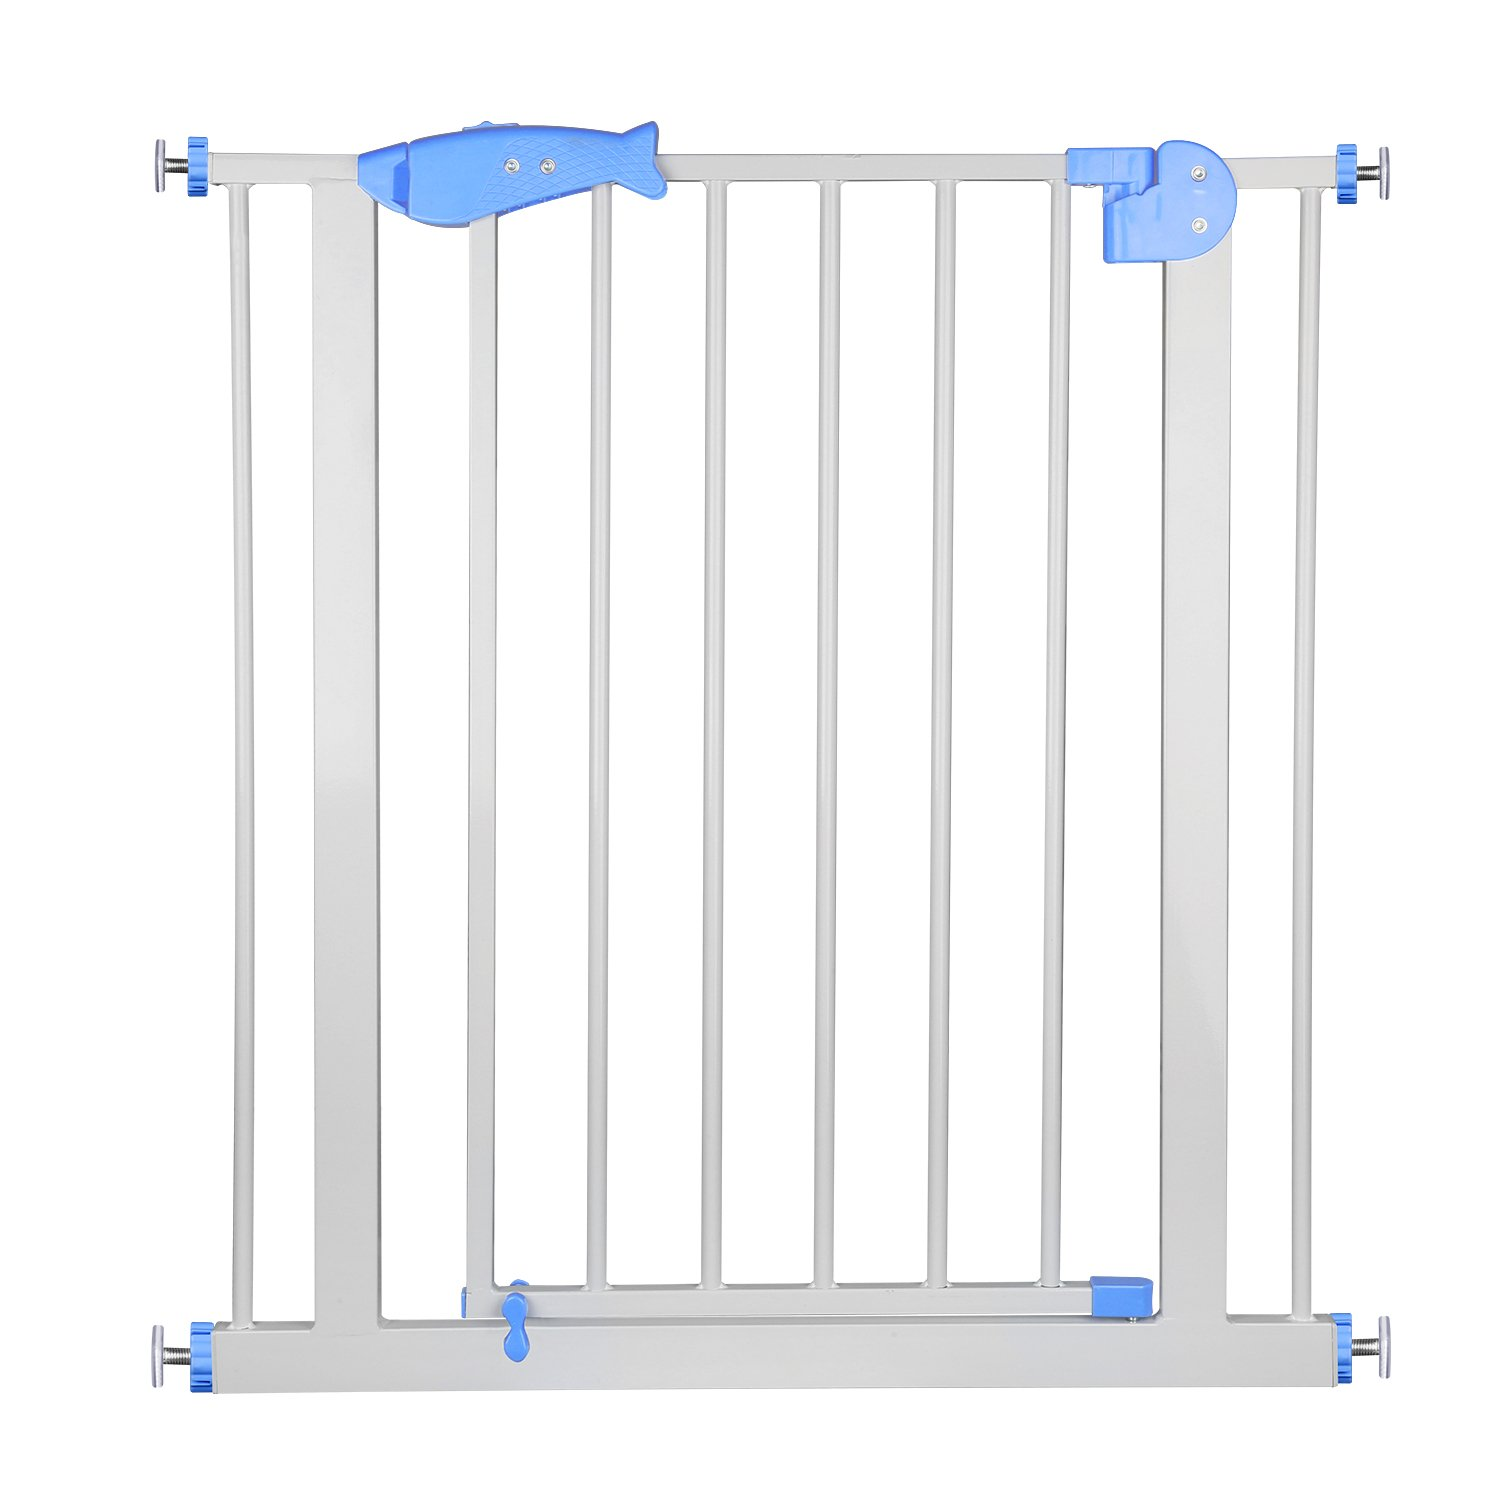 Auto Close Secure Tech Metal Gate Easy Open Walk-Thru Safety Gate Great for Pets and Children HH